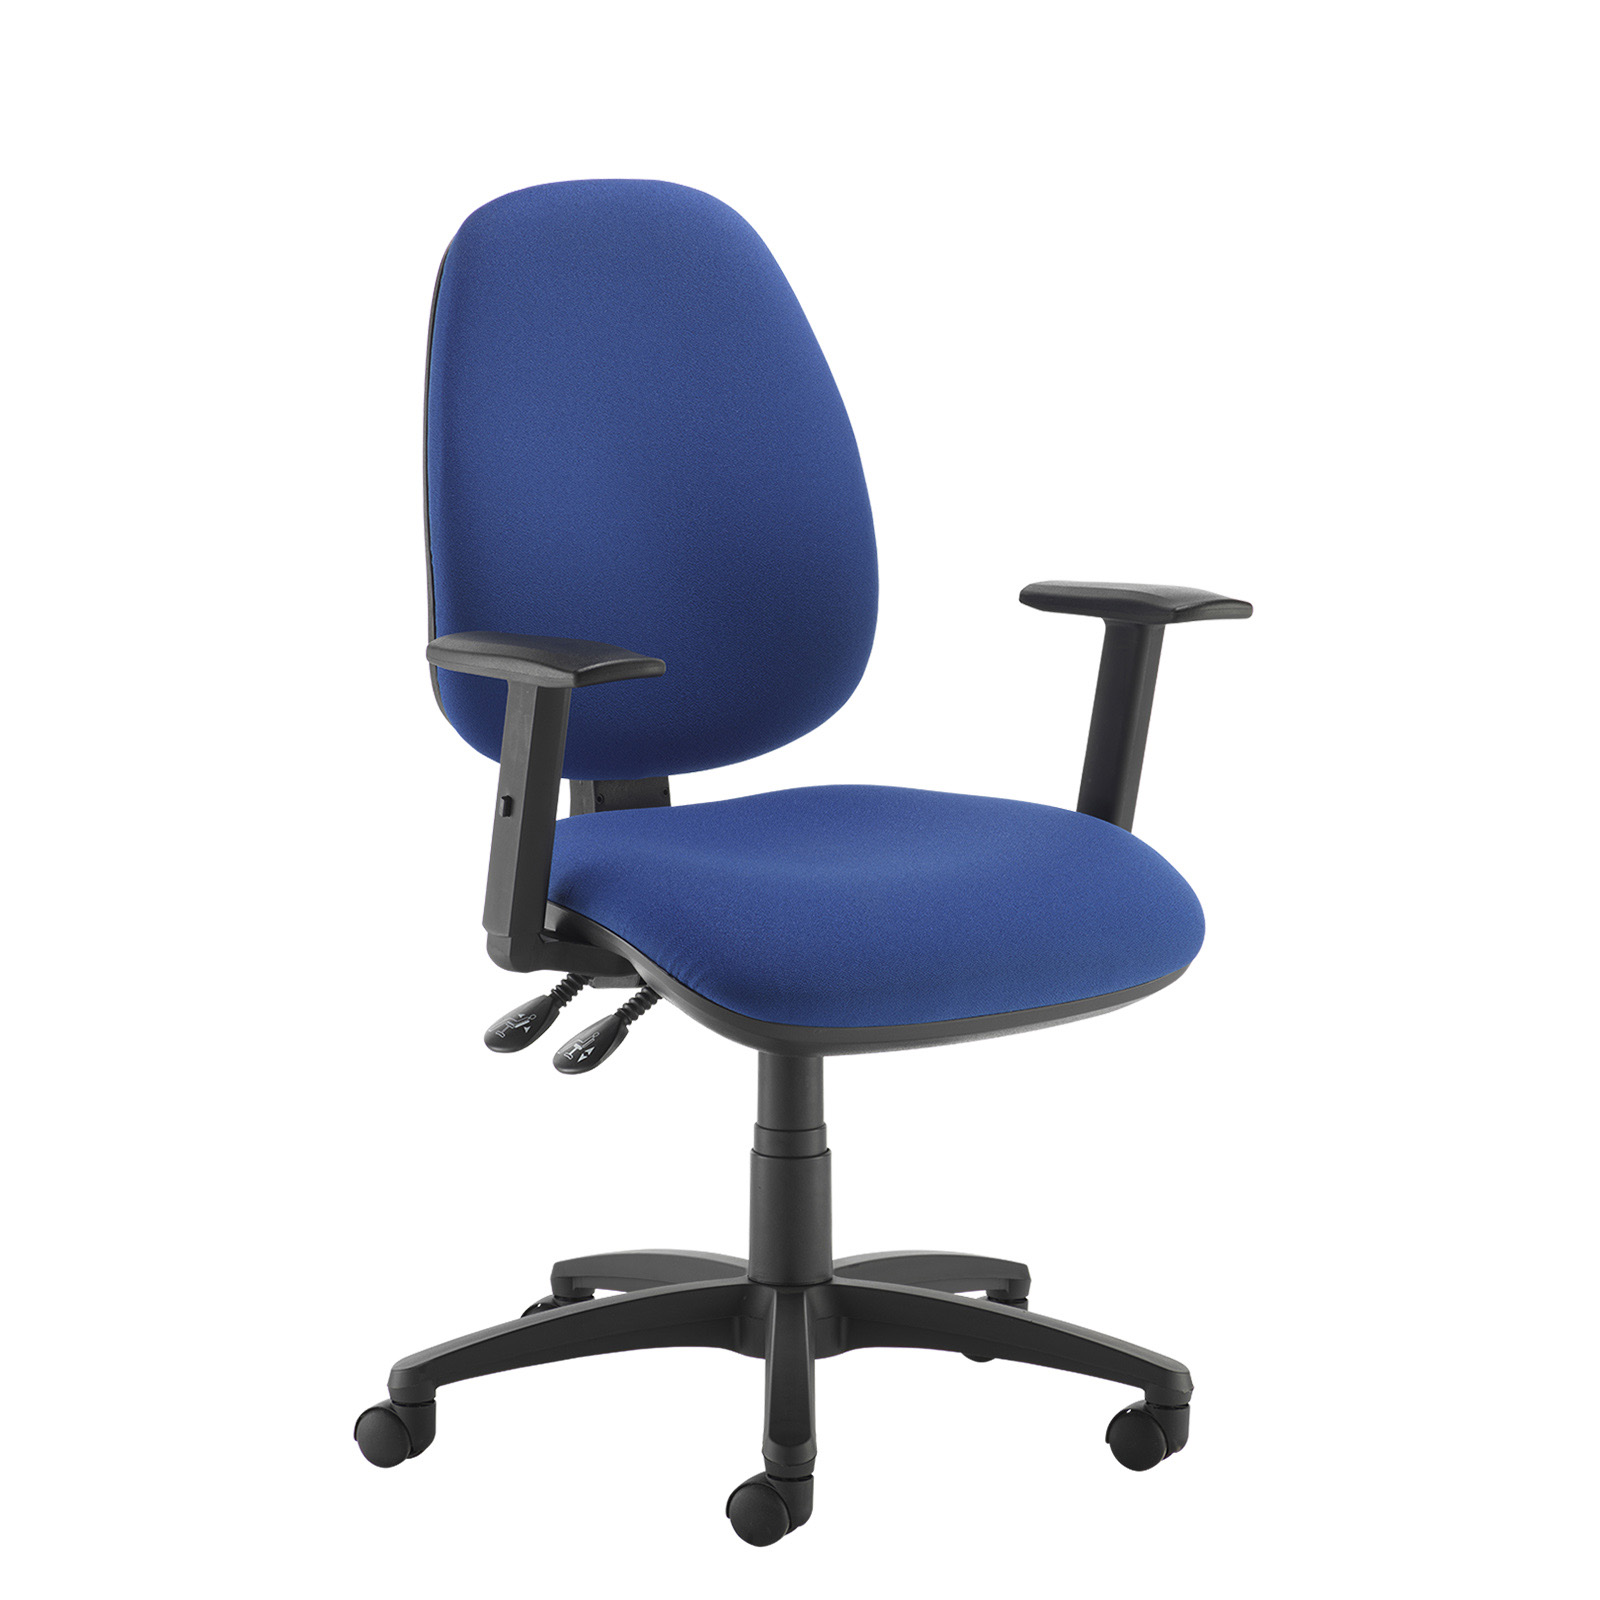 Desk Chairs Jota high back operator chair with adjustable arms - blue